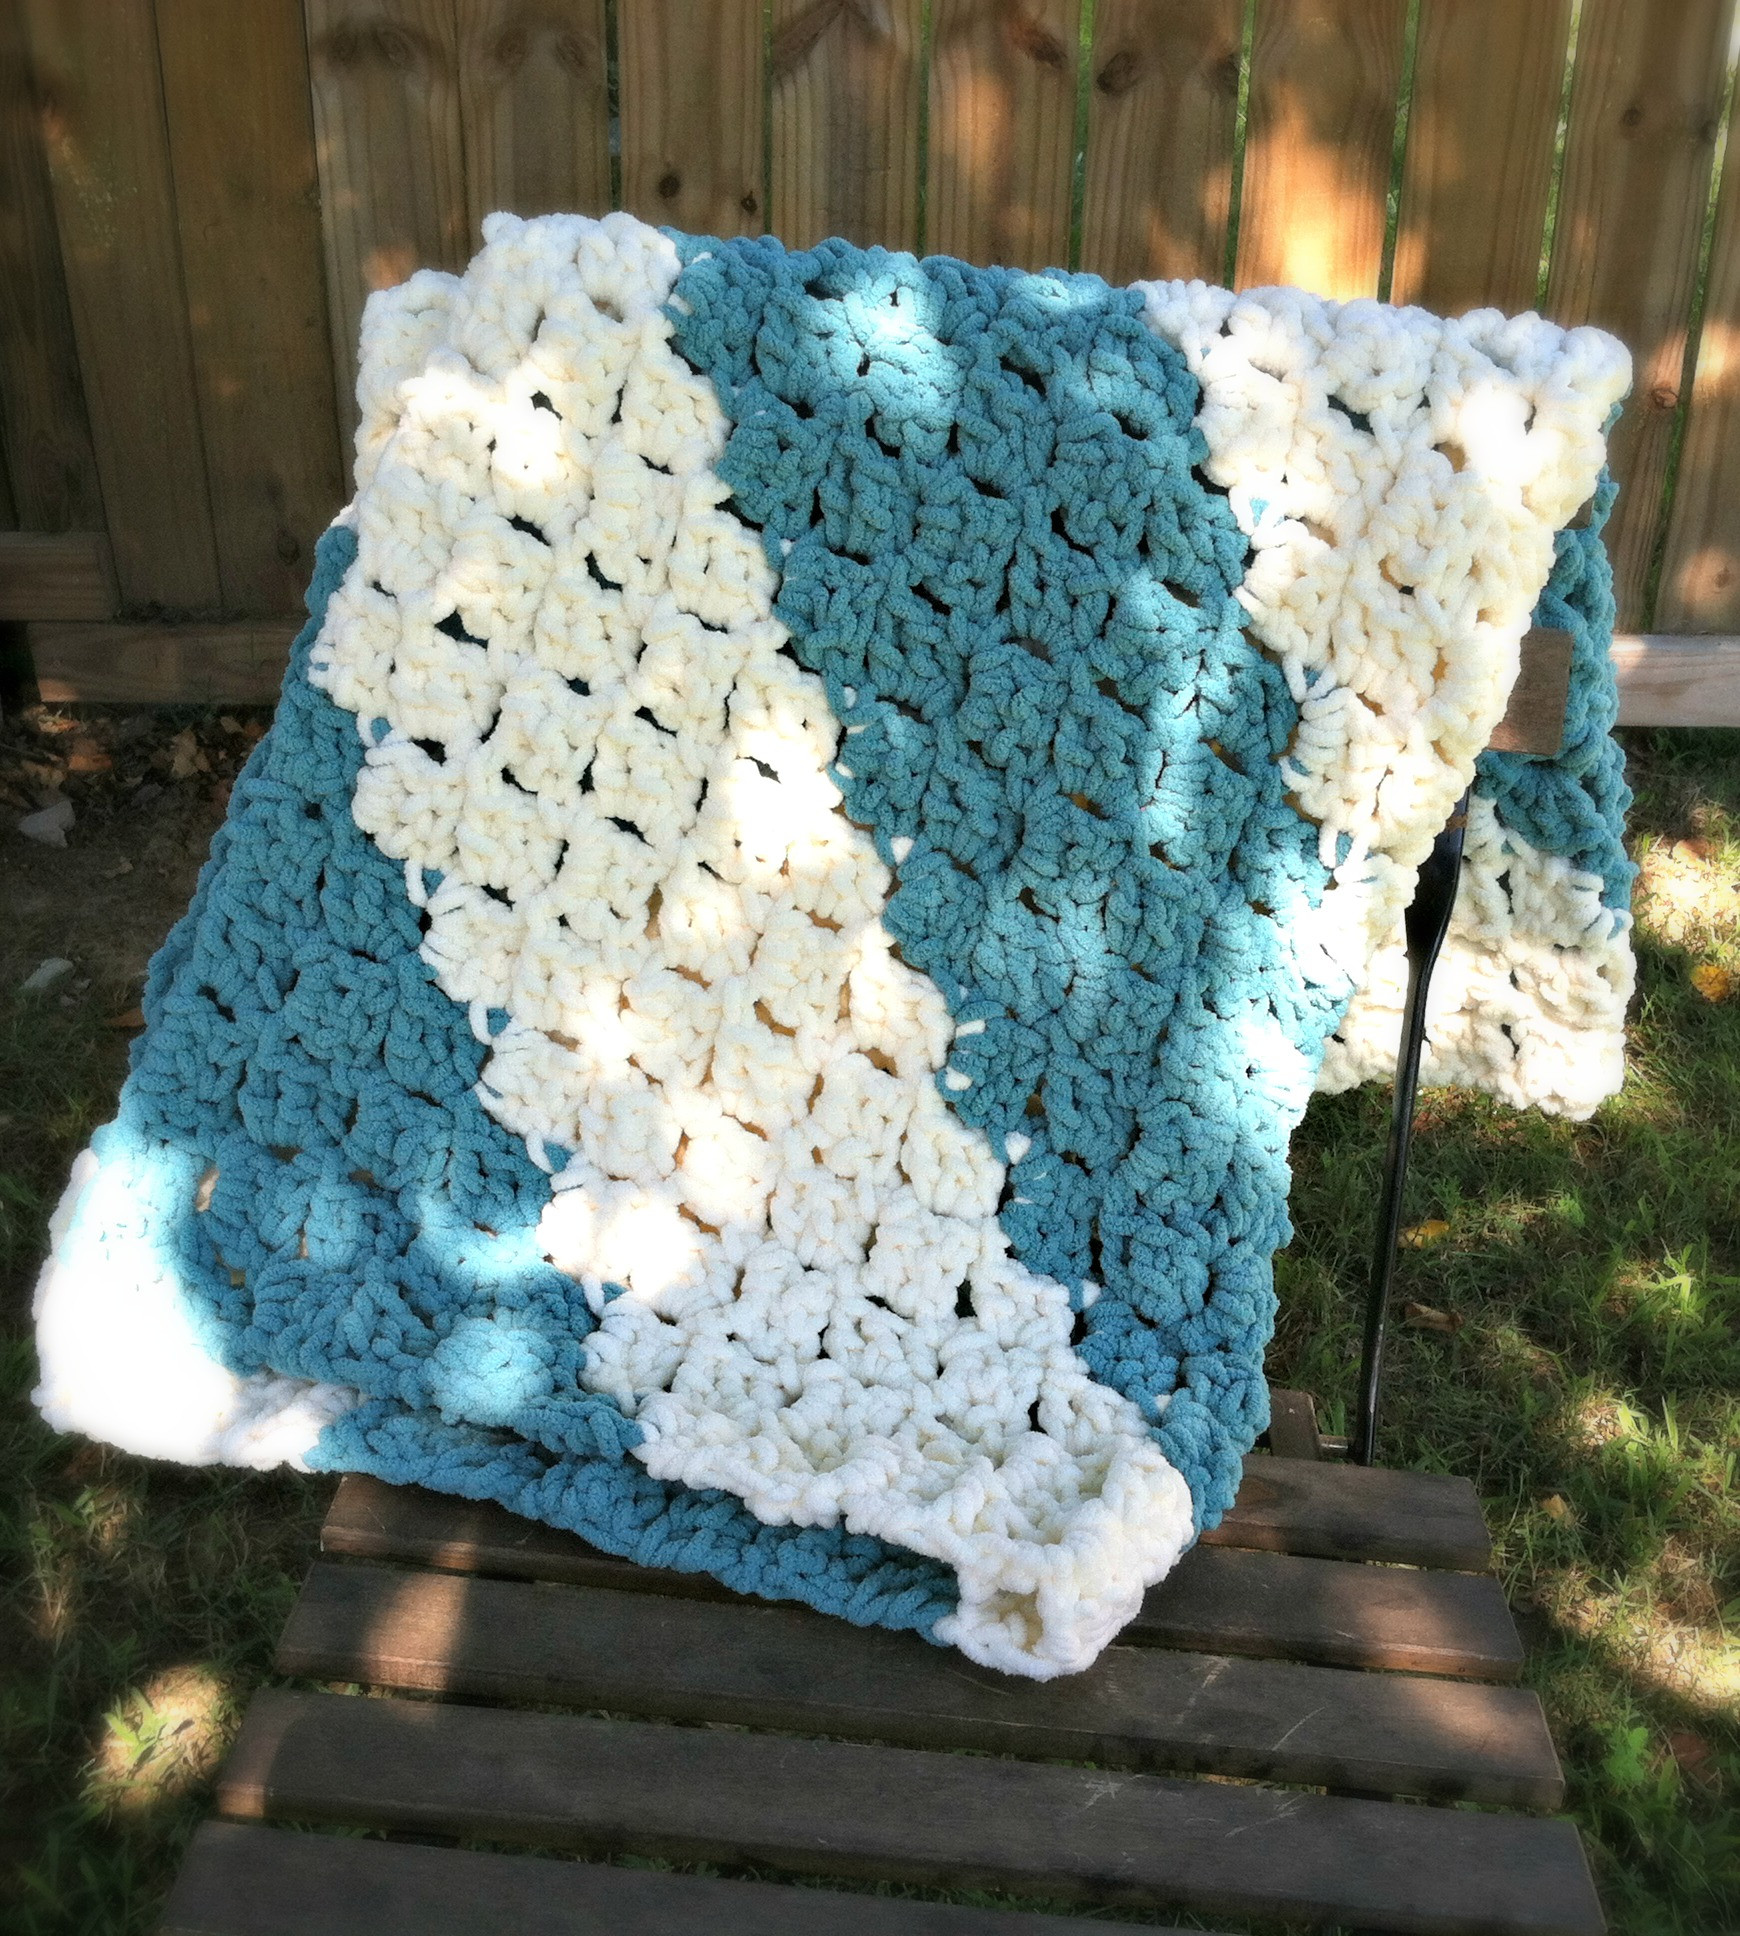 Bernat Baby Blanket Super Bulky Yarn Crochet Patterns Awesome Quick and Easy Baby Blanket Free Crochet Pattern Of Luxury 48 Images Bernat Baby Blanket Super Bulky Yarn Crochet Patterns